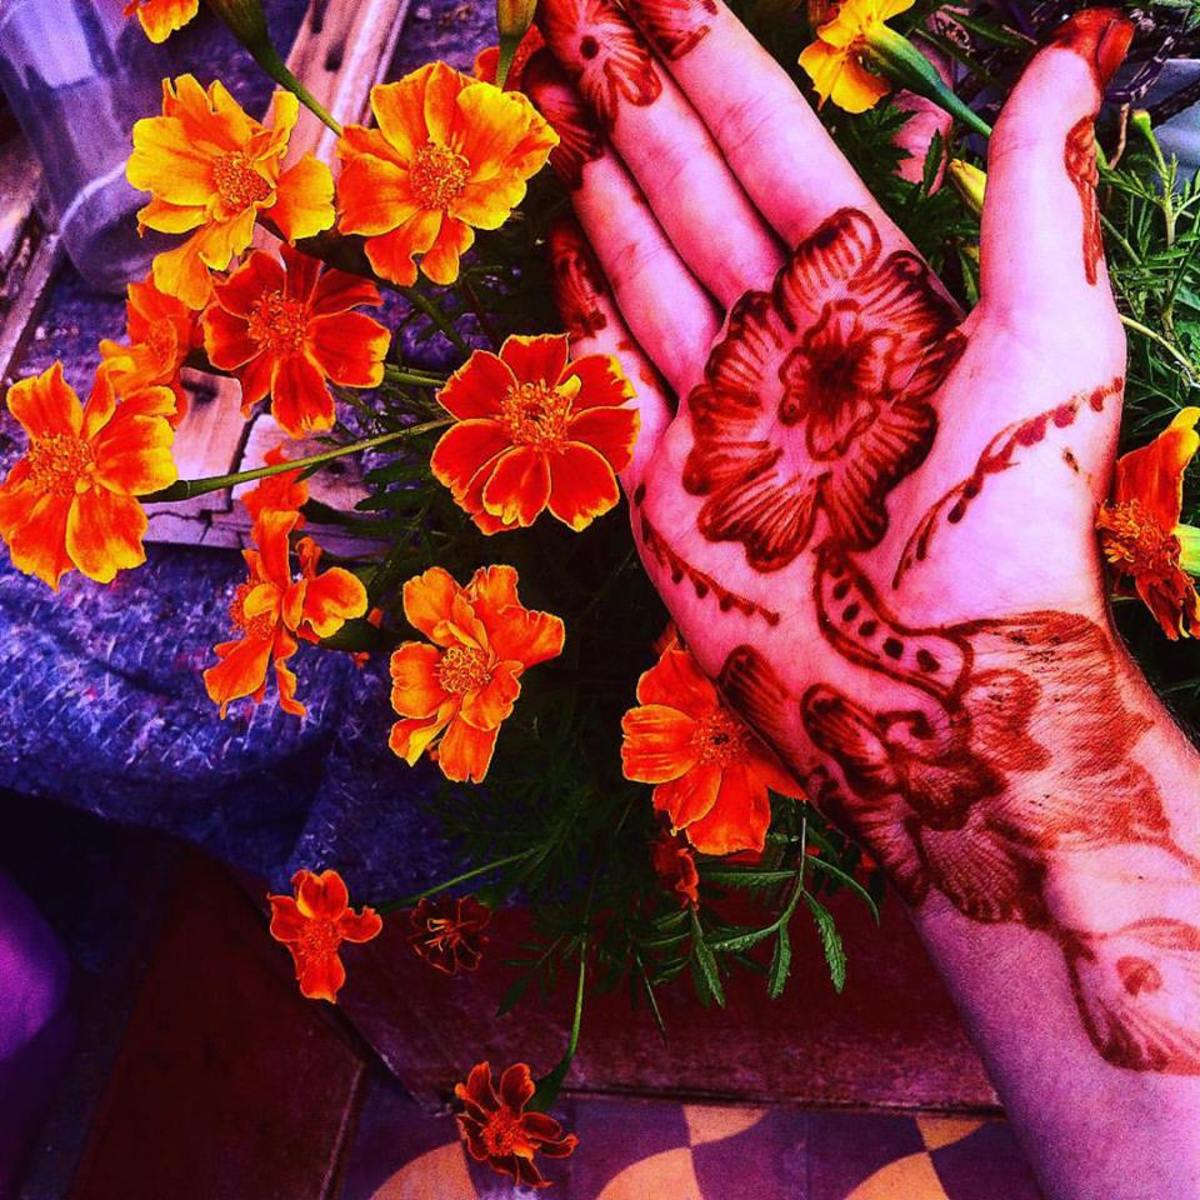 What Is the Meaning of Henna Tattoos?